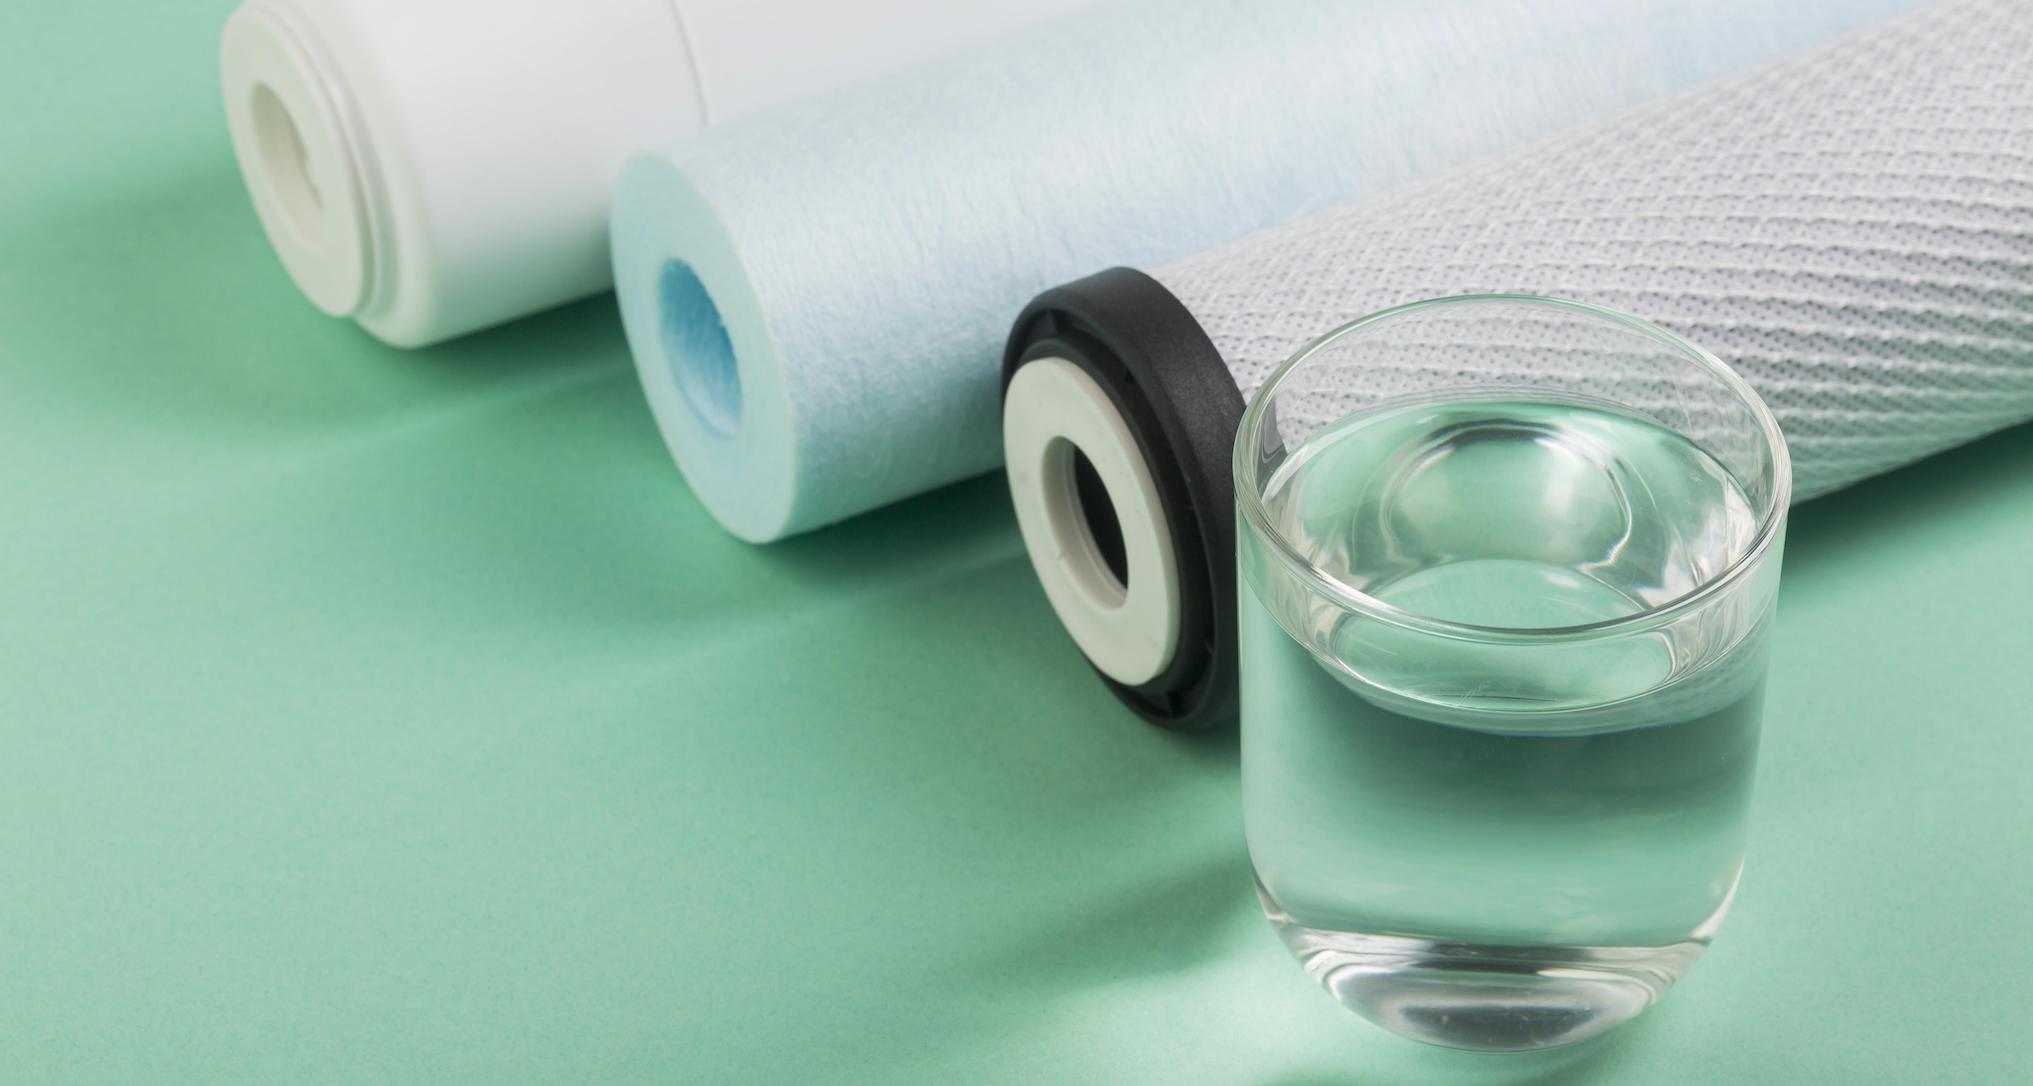 glass of water next to water filters